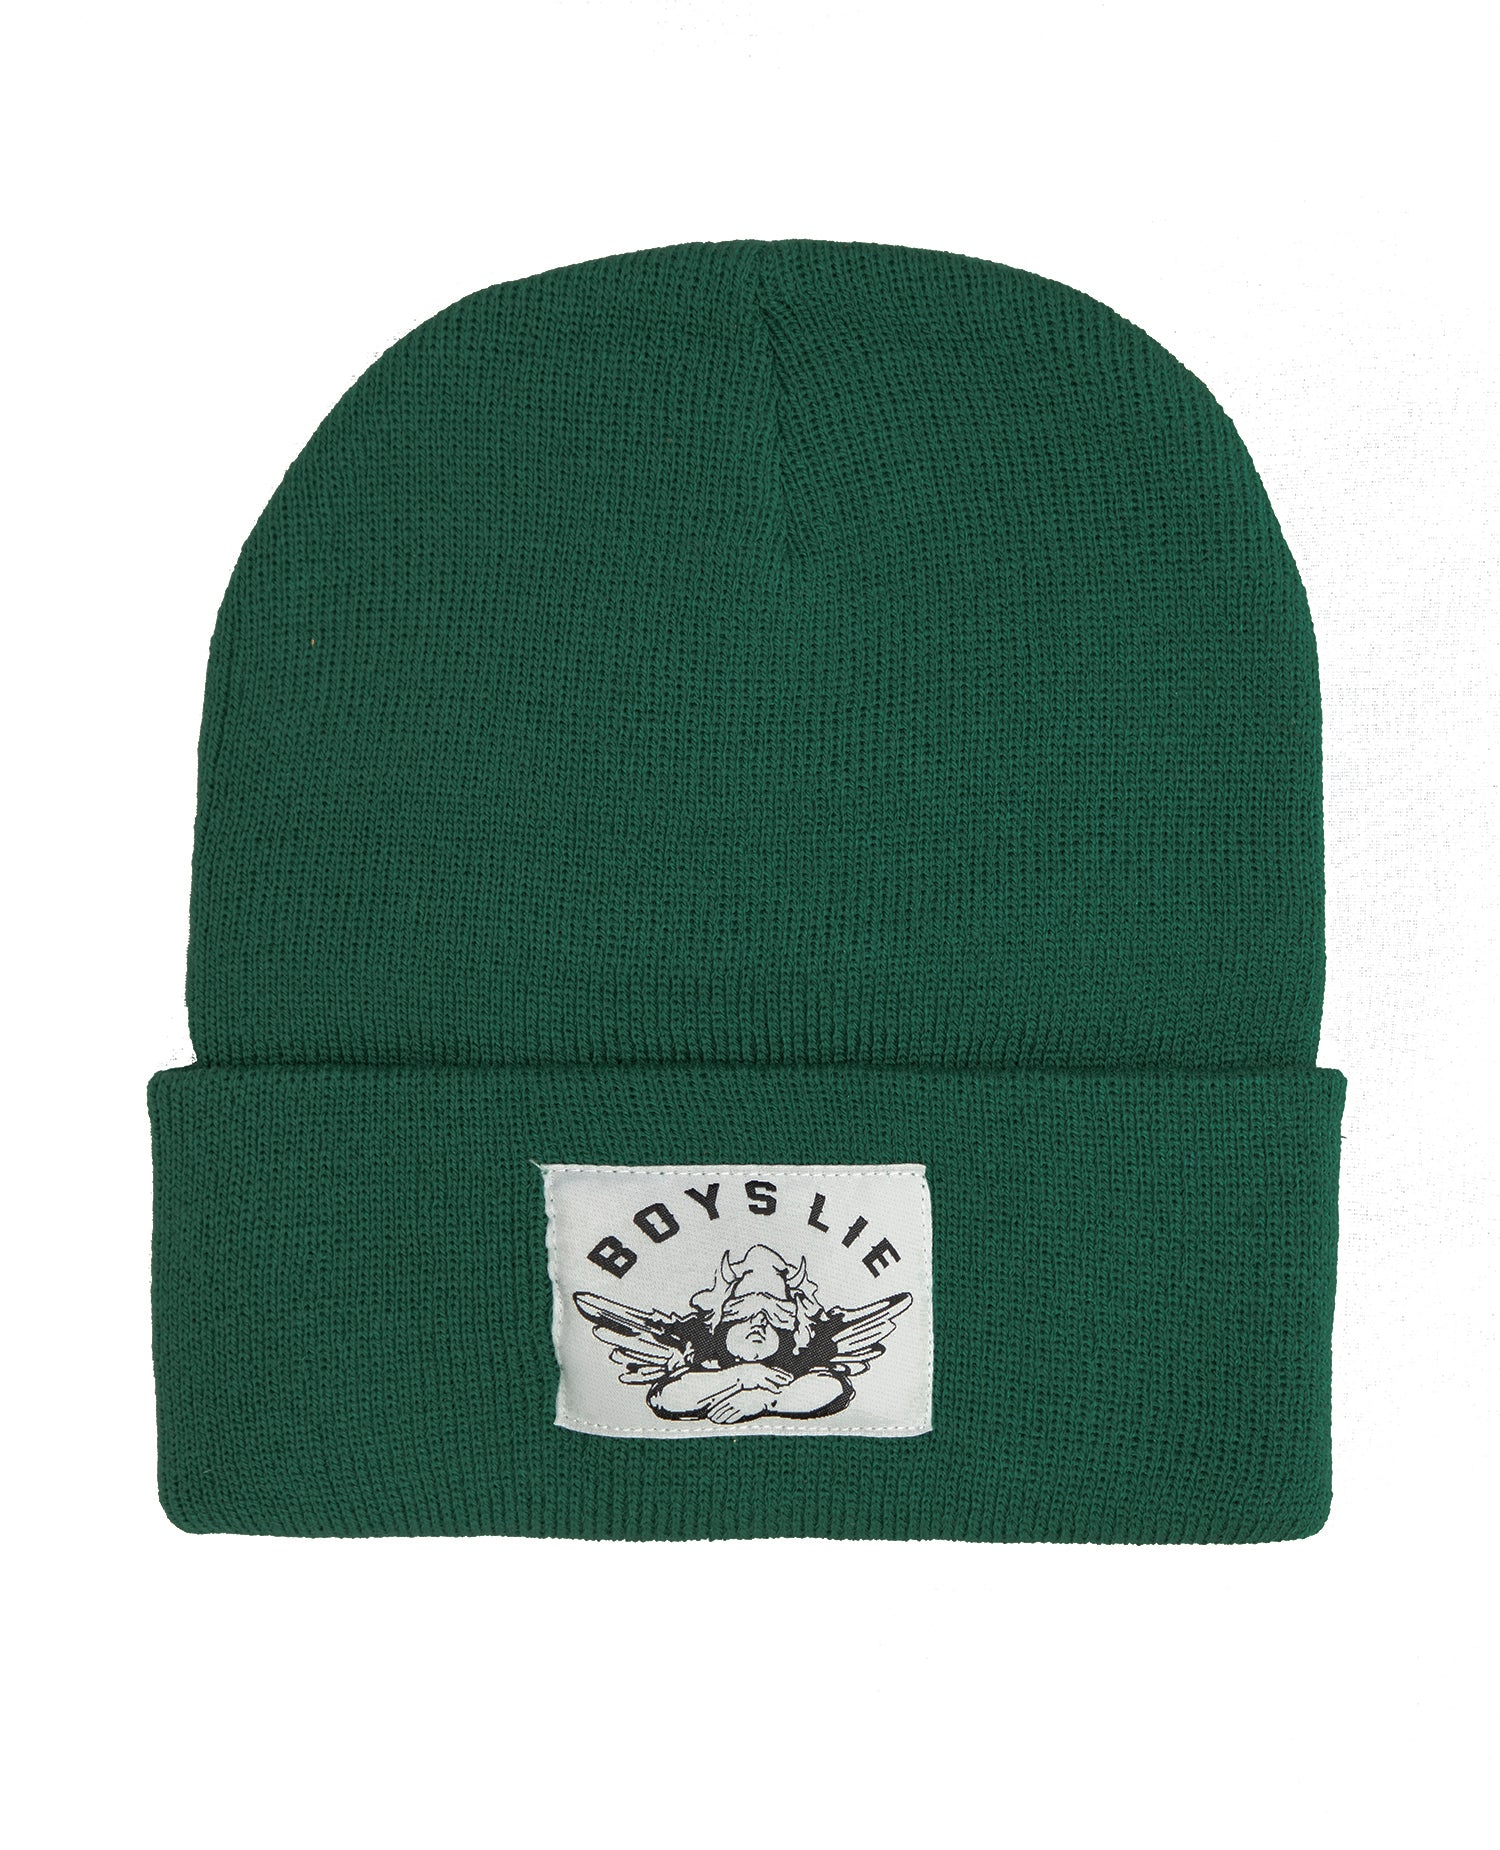 Boys Lie Forest Beanie